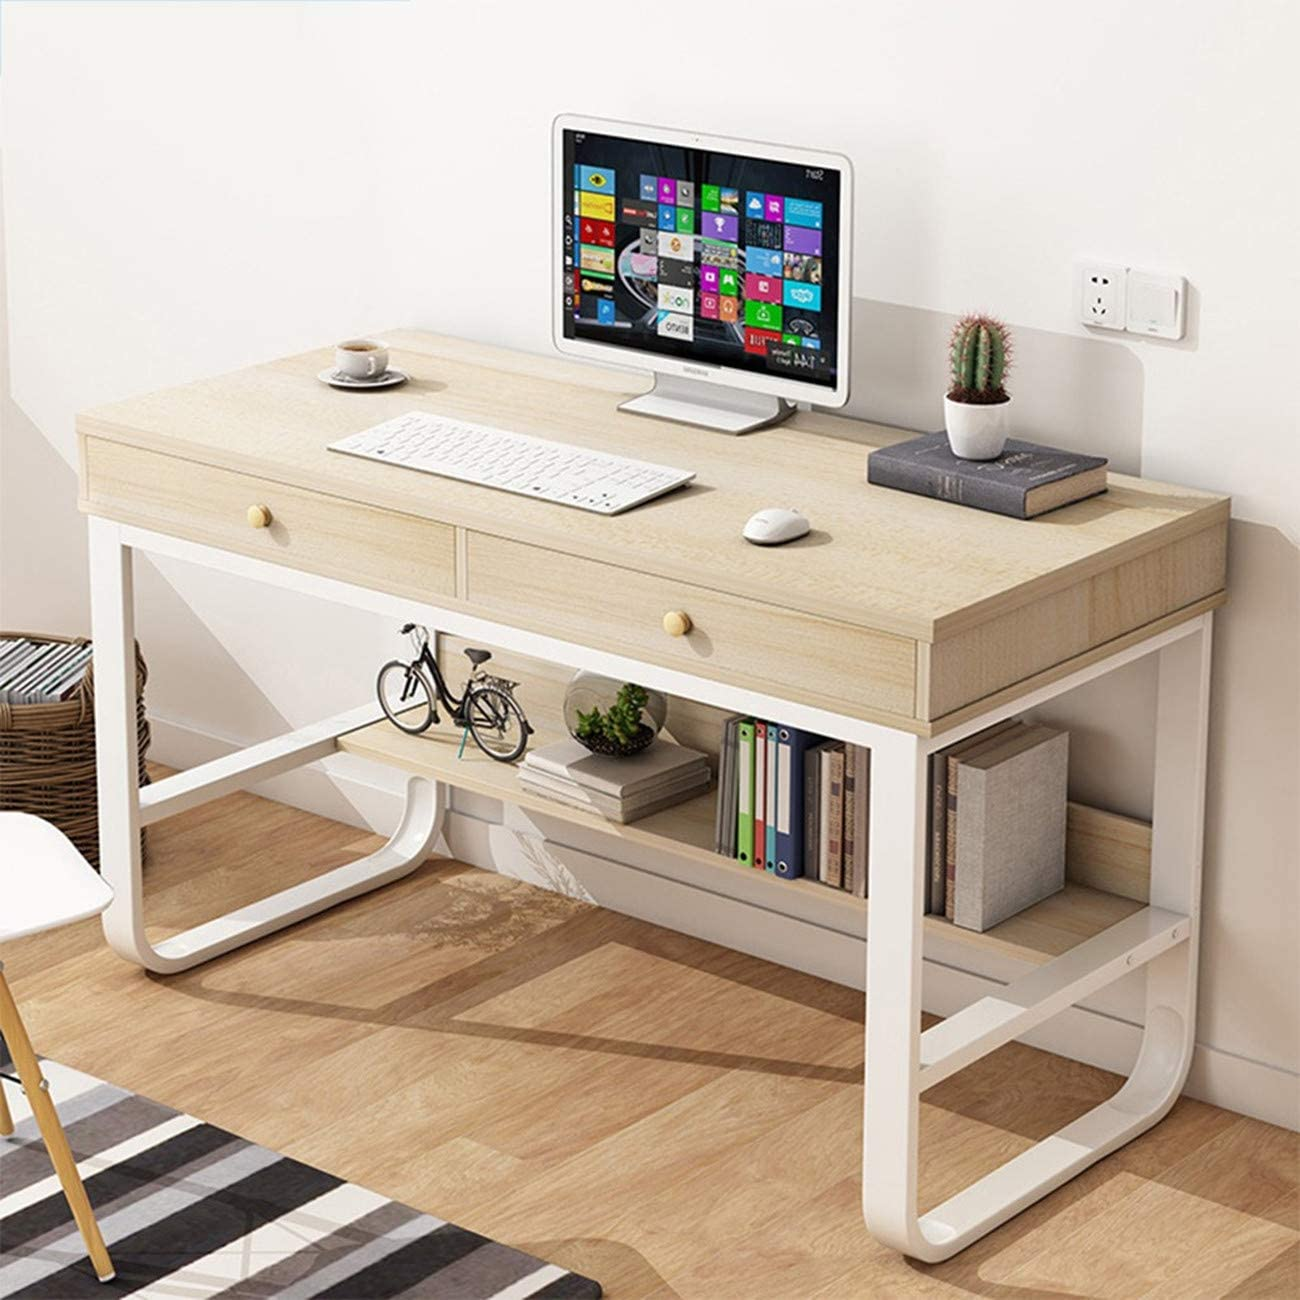 47'' Desktop Computer Desk with 2 Drawers, Home Office Multi-Layer Storage Study Writing Table Computer Gaming Table Bedroom Laptop Study Table Bookcase,US Shipping (White)